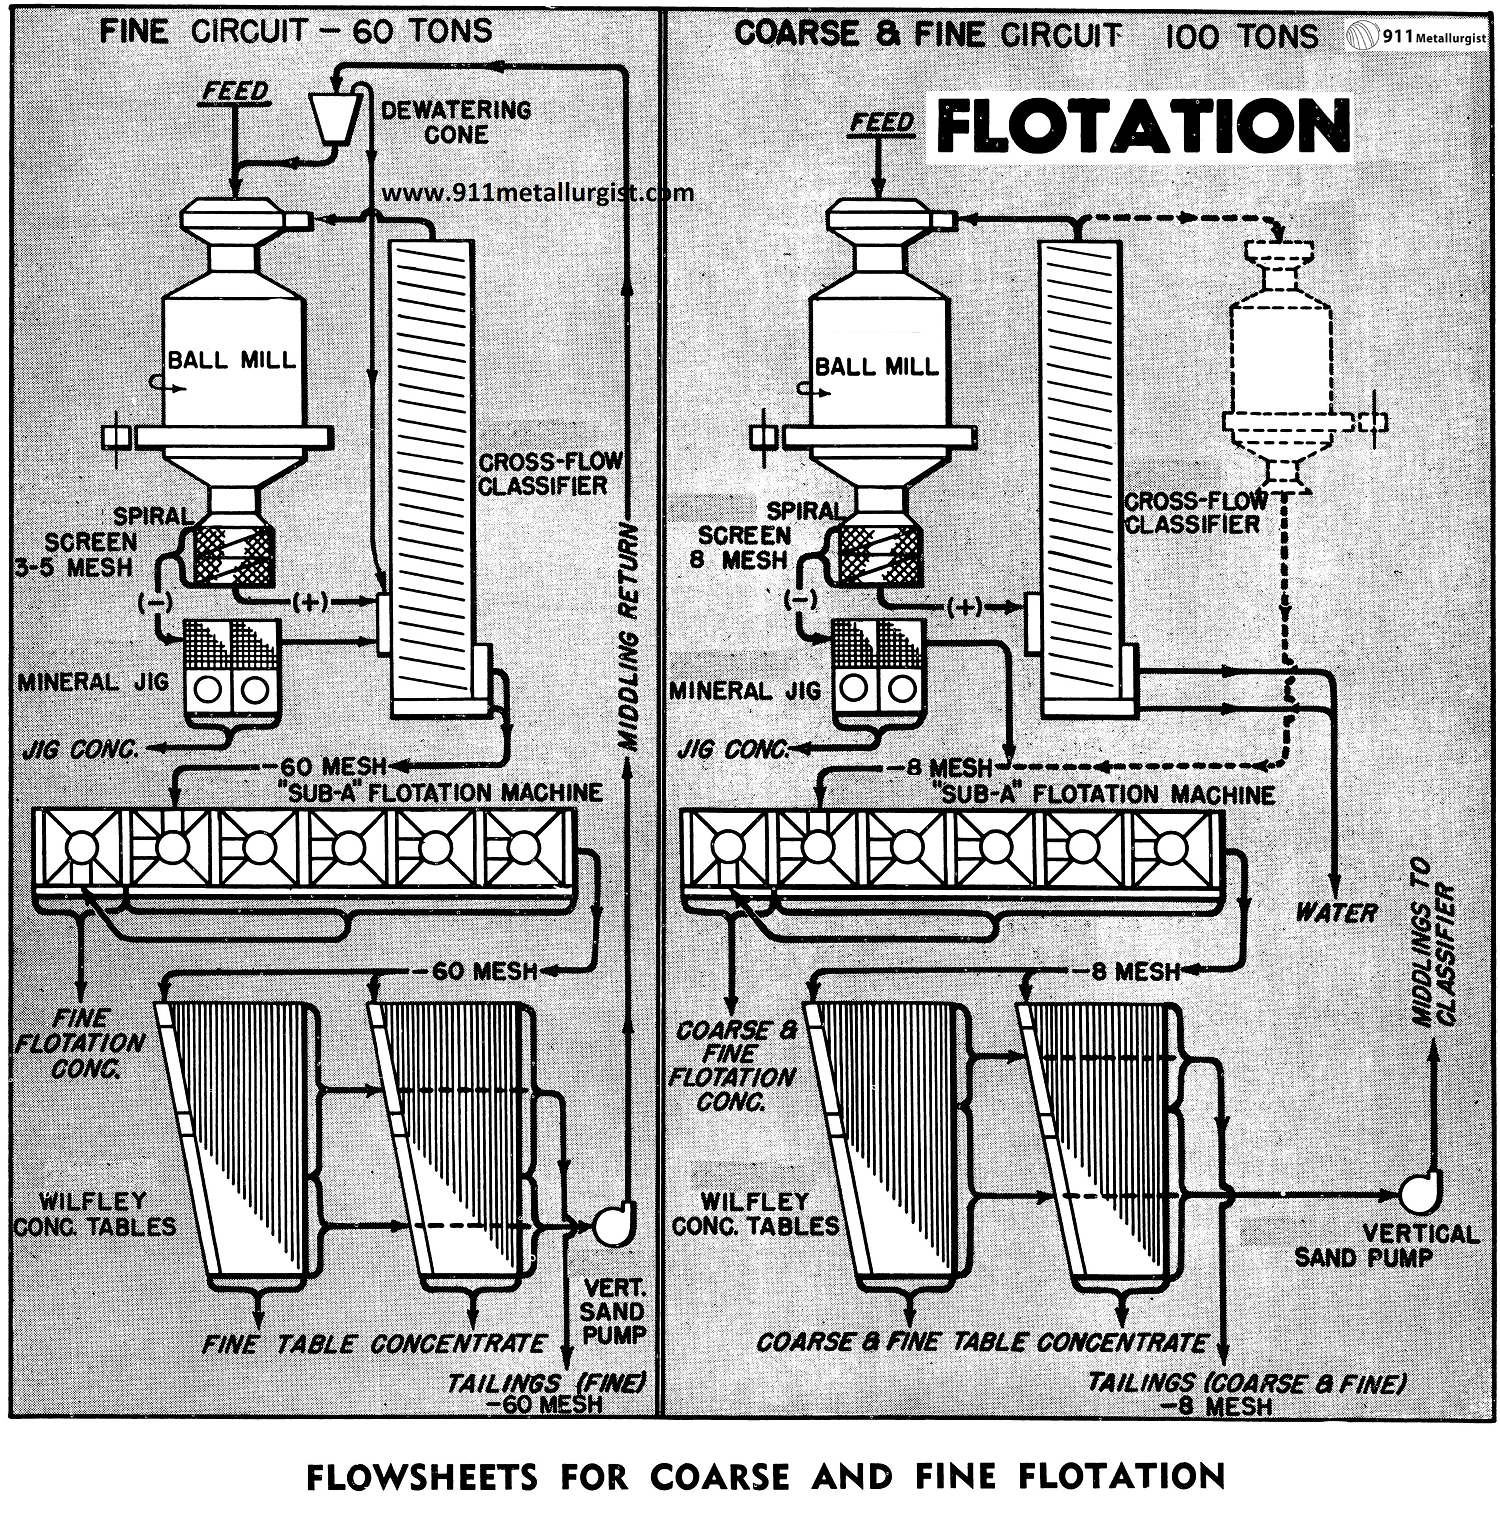 Flowsheets for Coarse and Fine Flotation